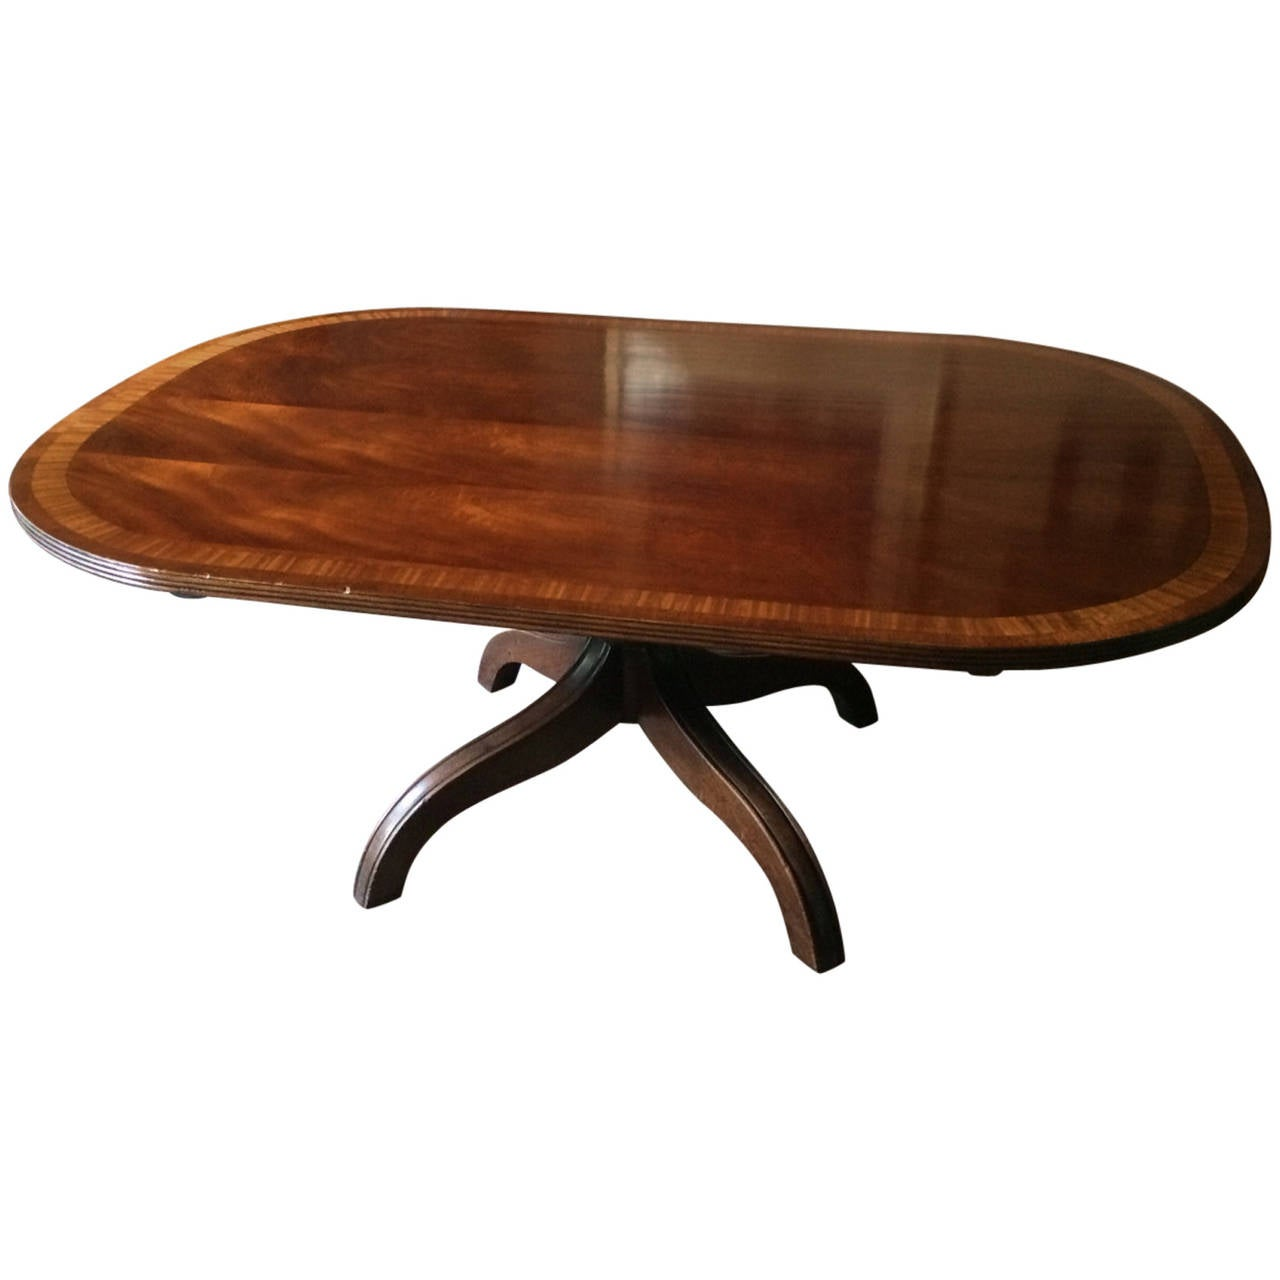 Antique mahogany and rosewood oblong coffee table at 1stdibs for Mahogany coffee table